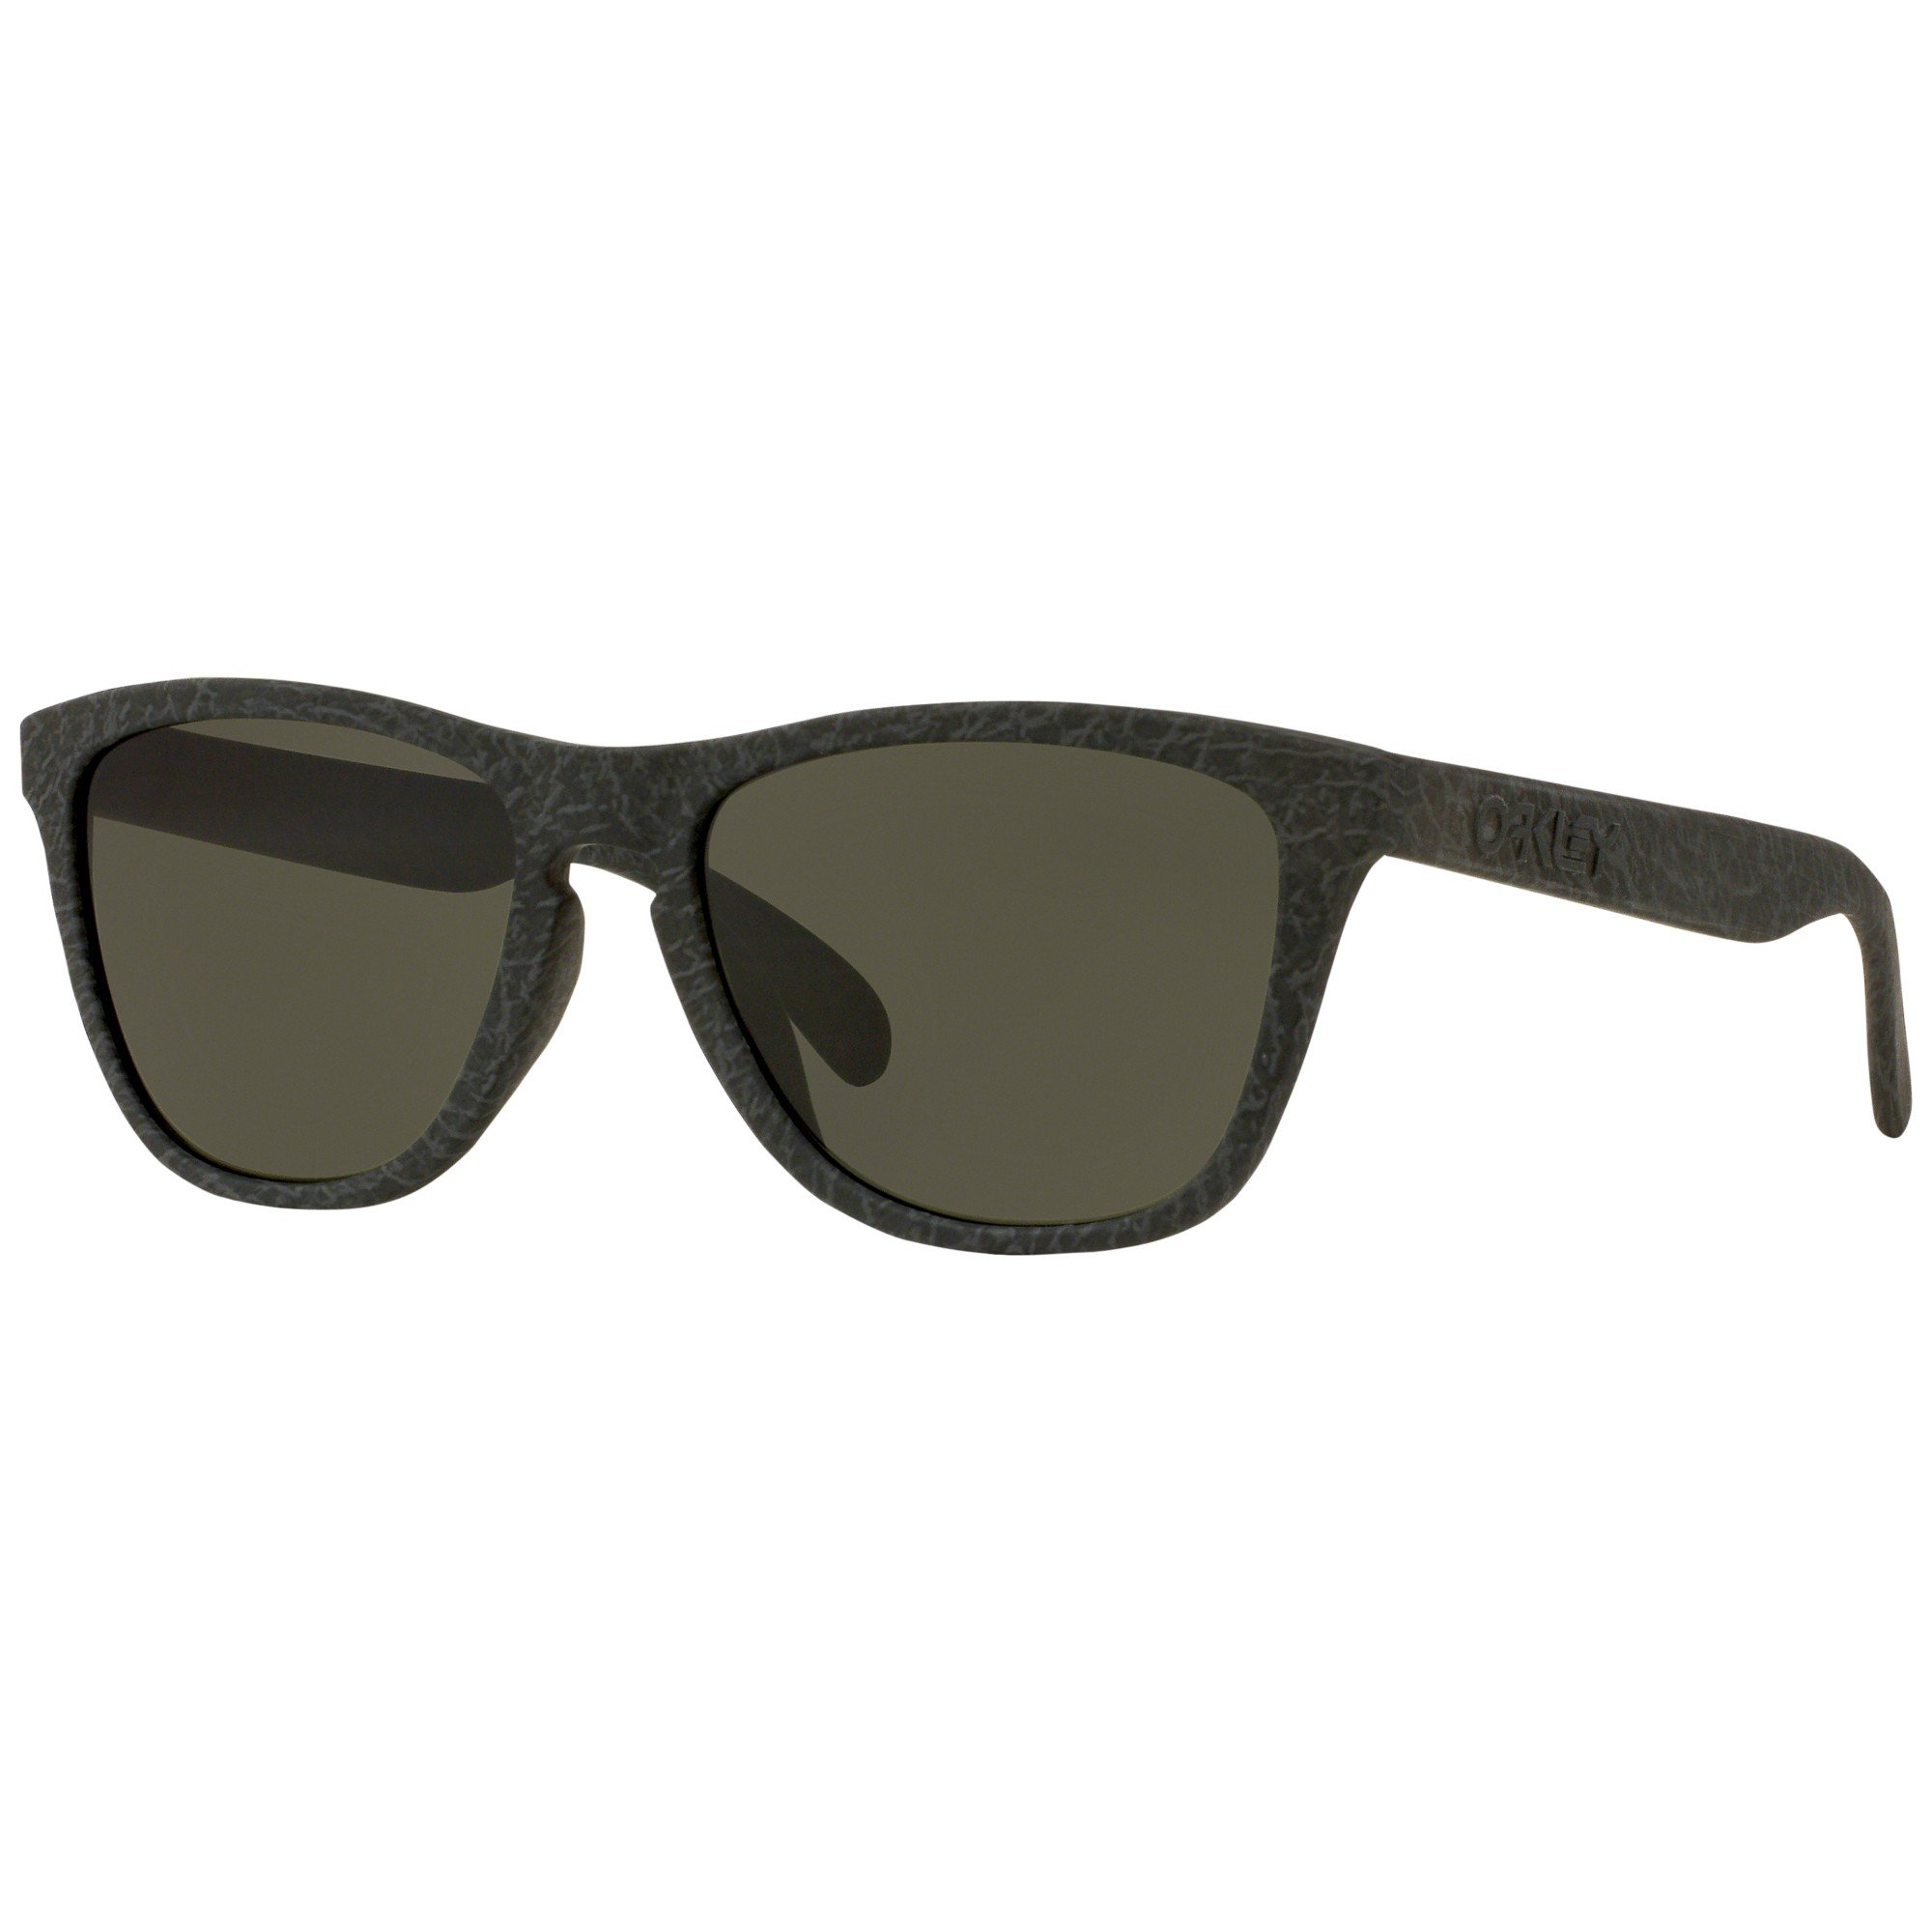 Oakley Oo9013 Frogskins Square Sunglasses in Charcoal (Black)